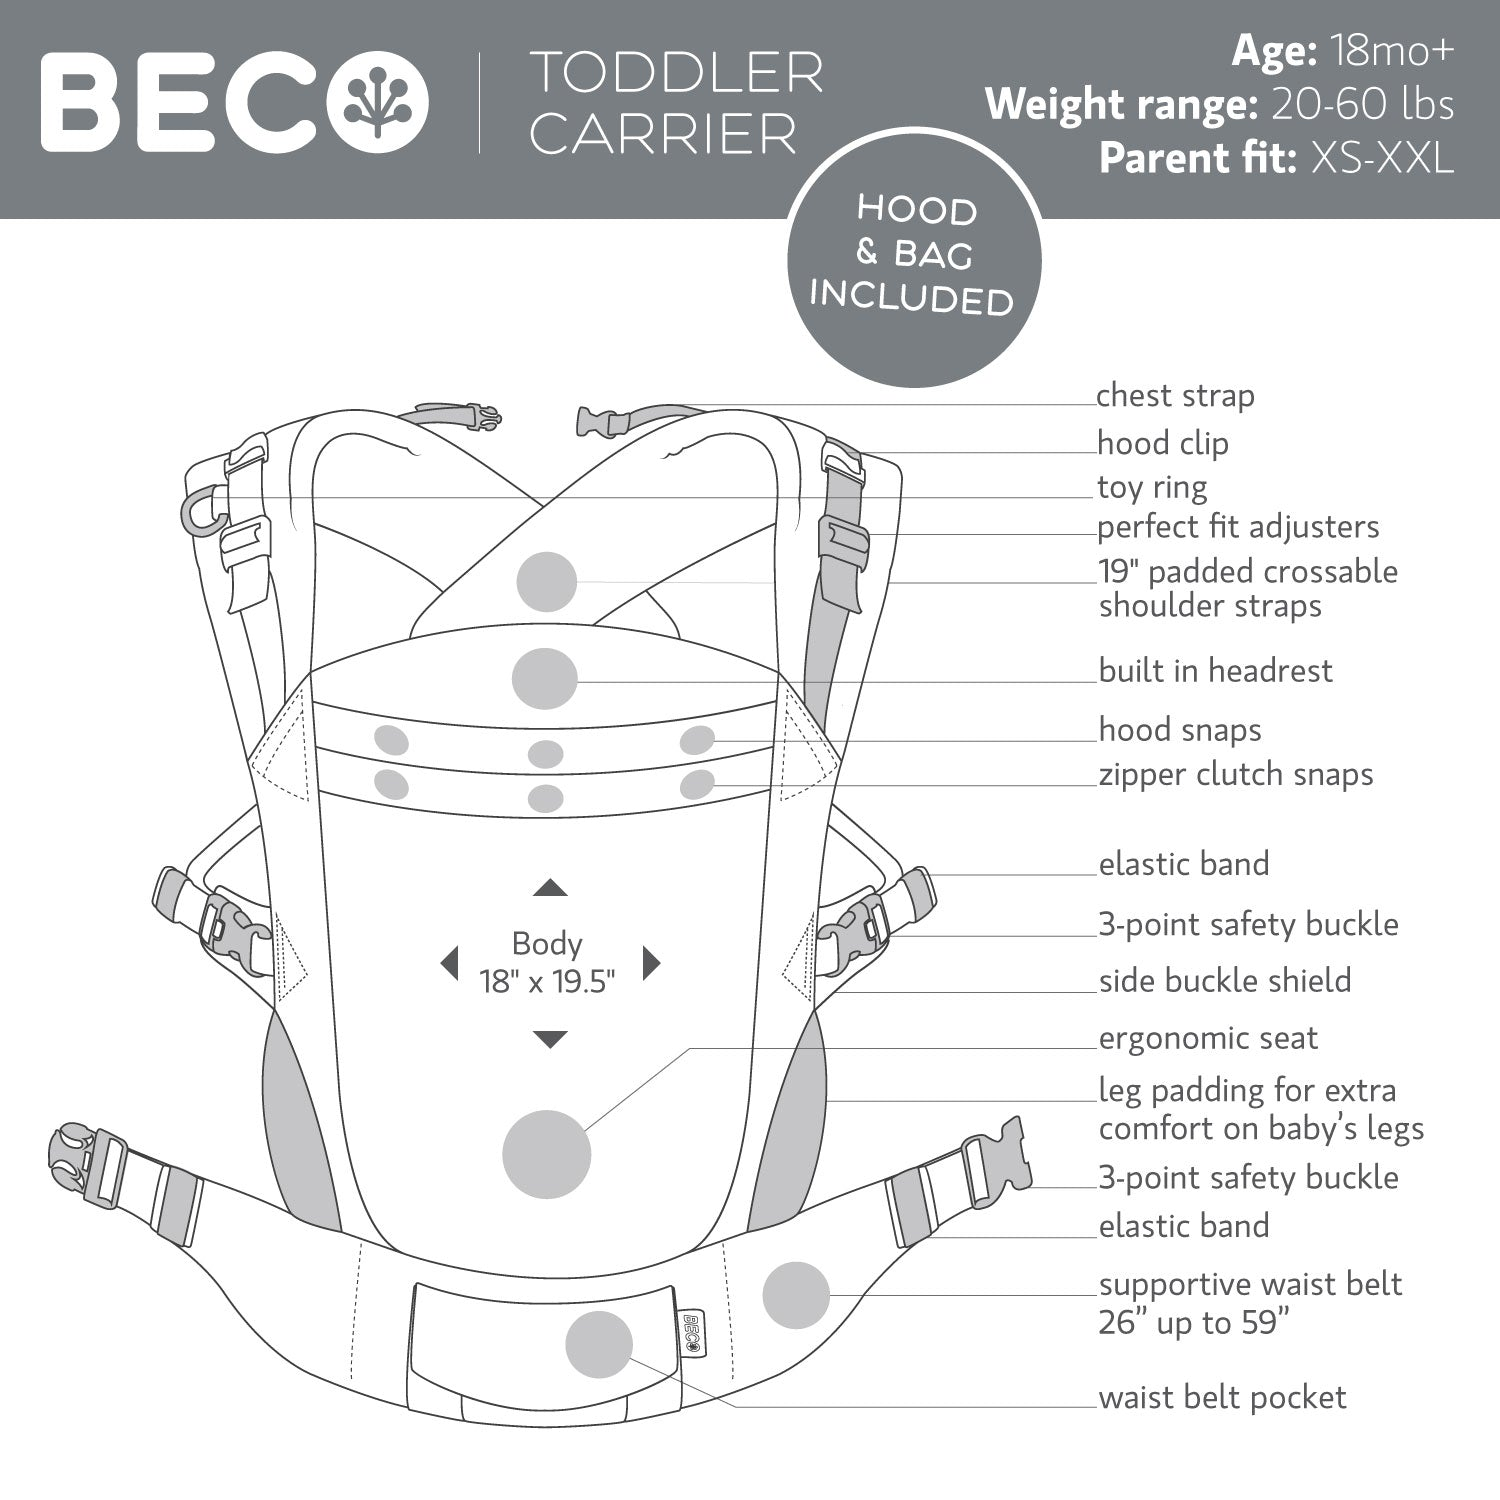 beco-toddler-diagram